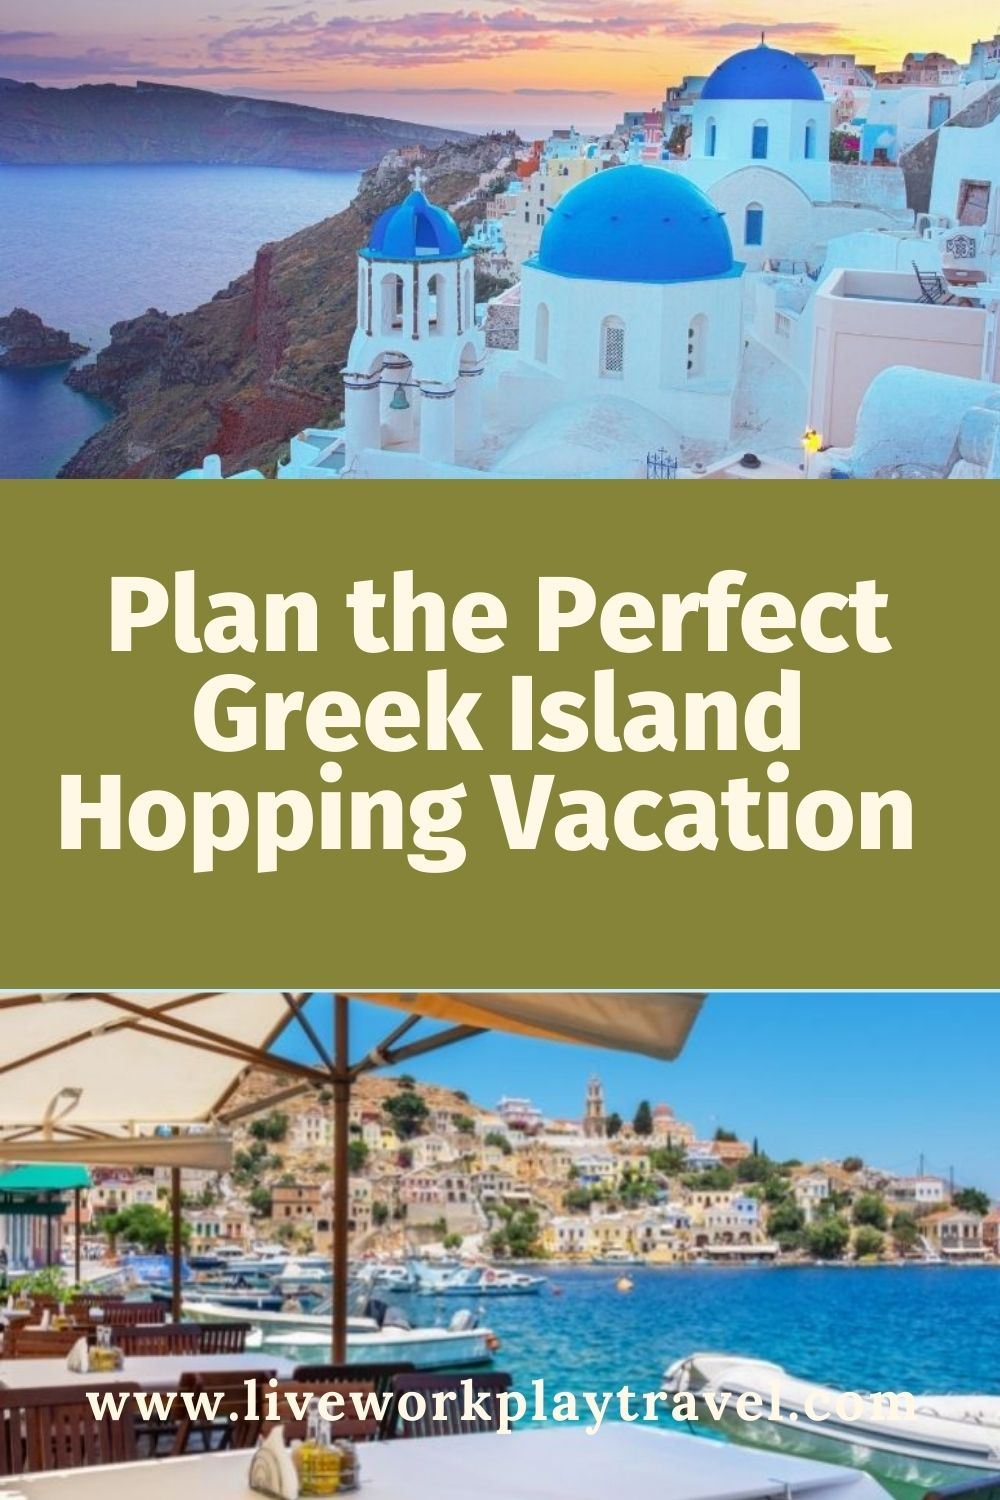 Plan The Perfect Greek Island Hopping Vacation To Include Whitewashed Buildings Overlooking Crystal Clear Blue Waters.